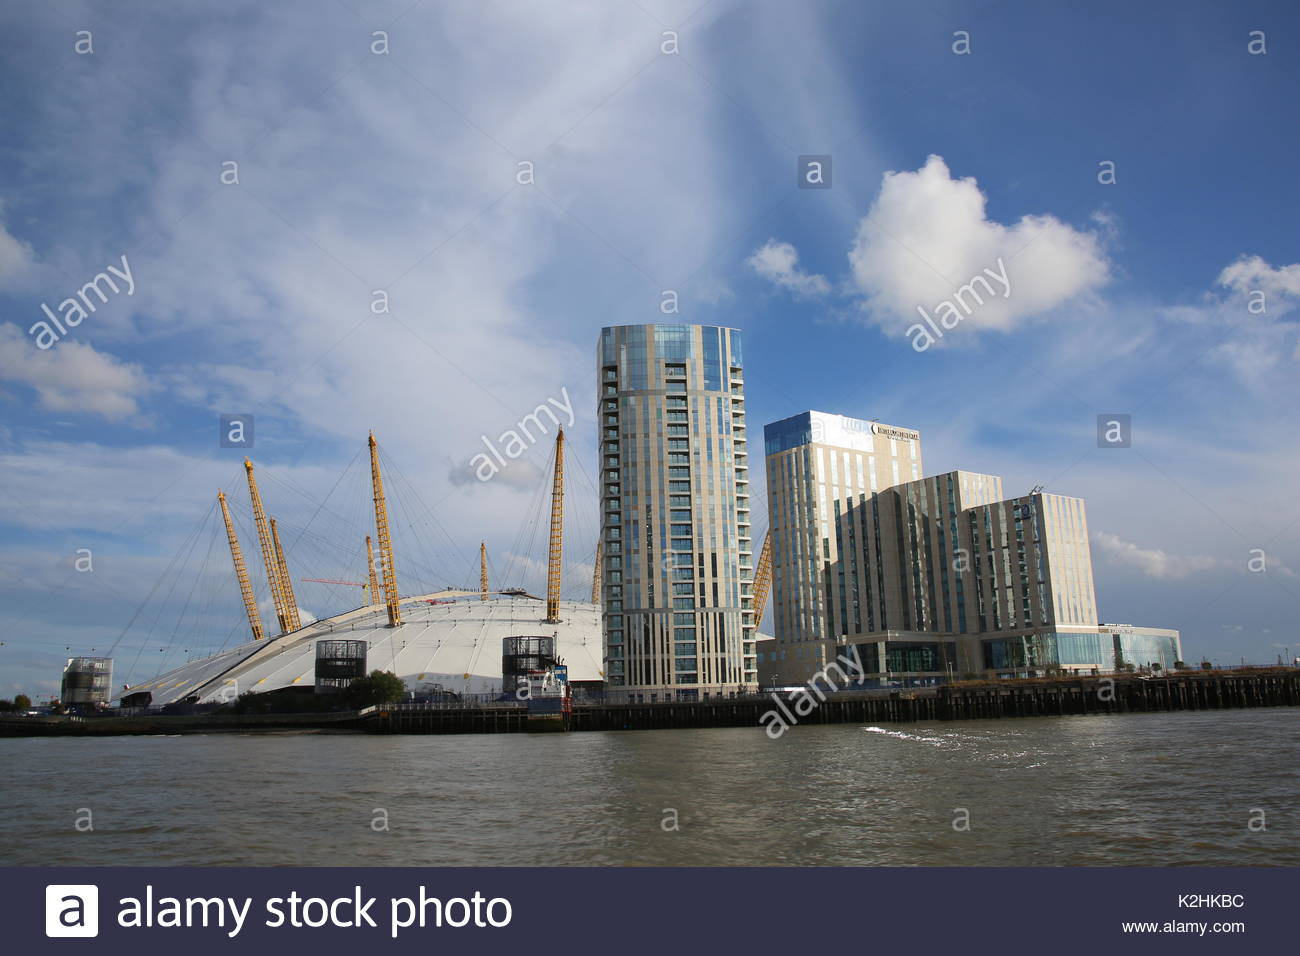 Hotel O2 The O2 Arena And The Intercontinental London Hotel As Seen From A